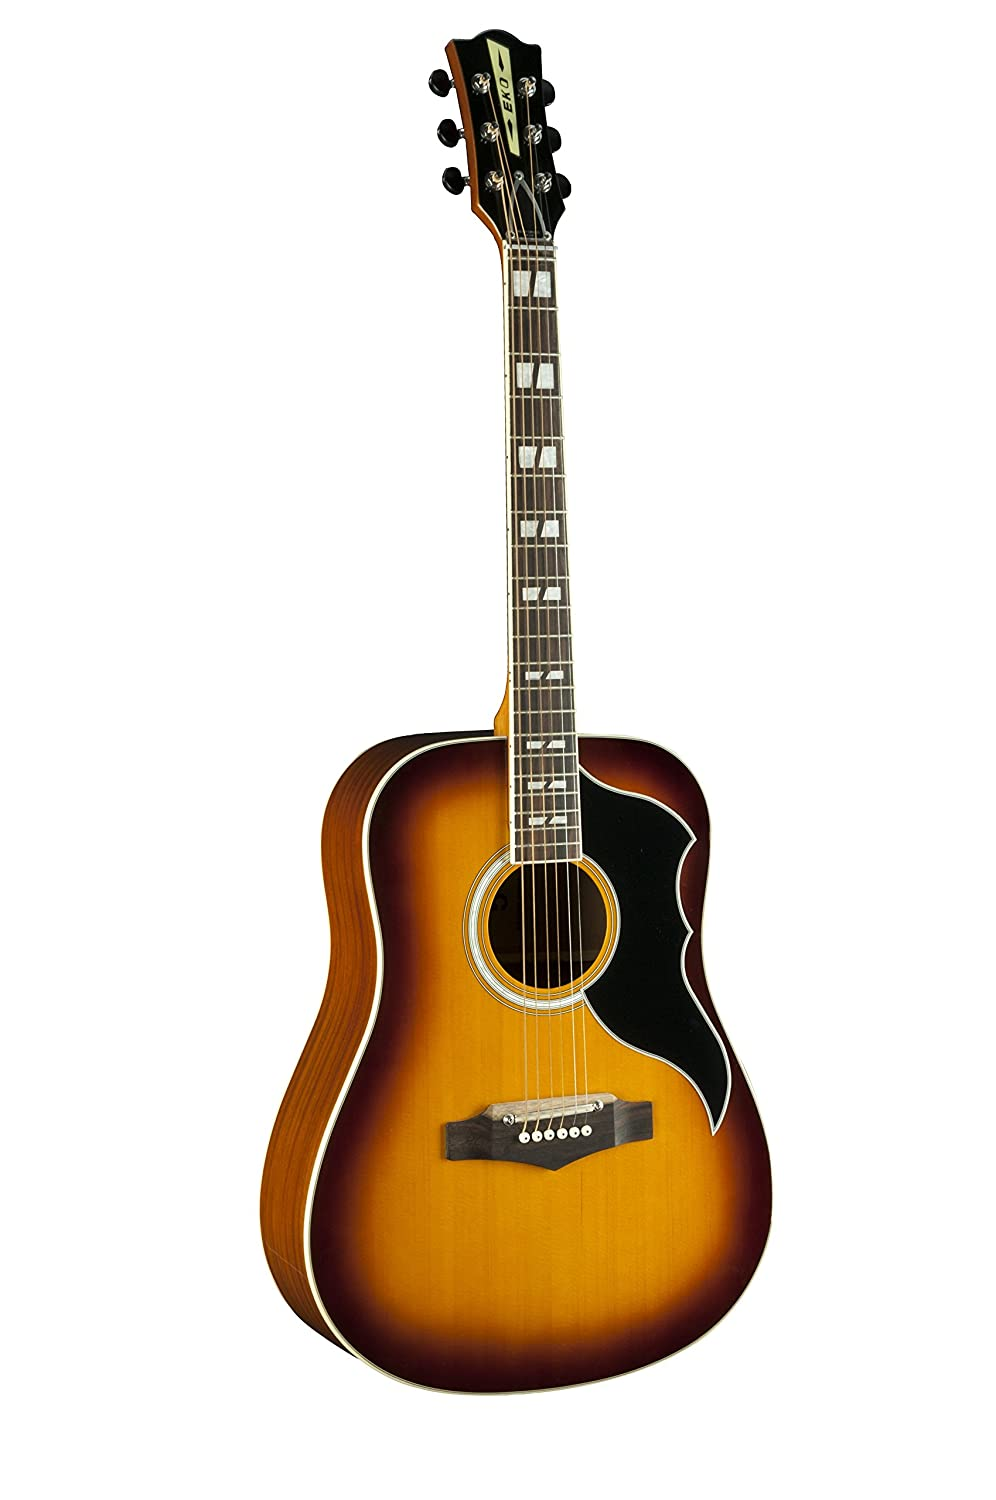 EKO Guitars 06217128 Ranger VI Dreadnought Acoustic Guitar